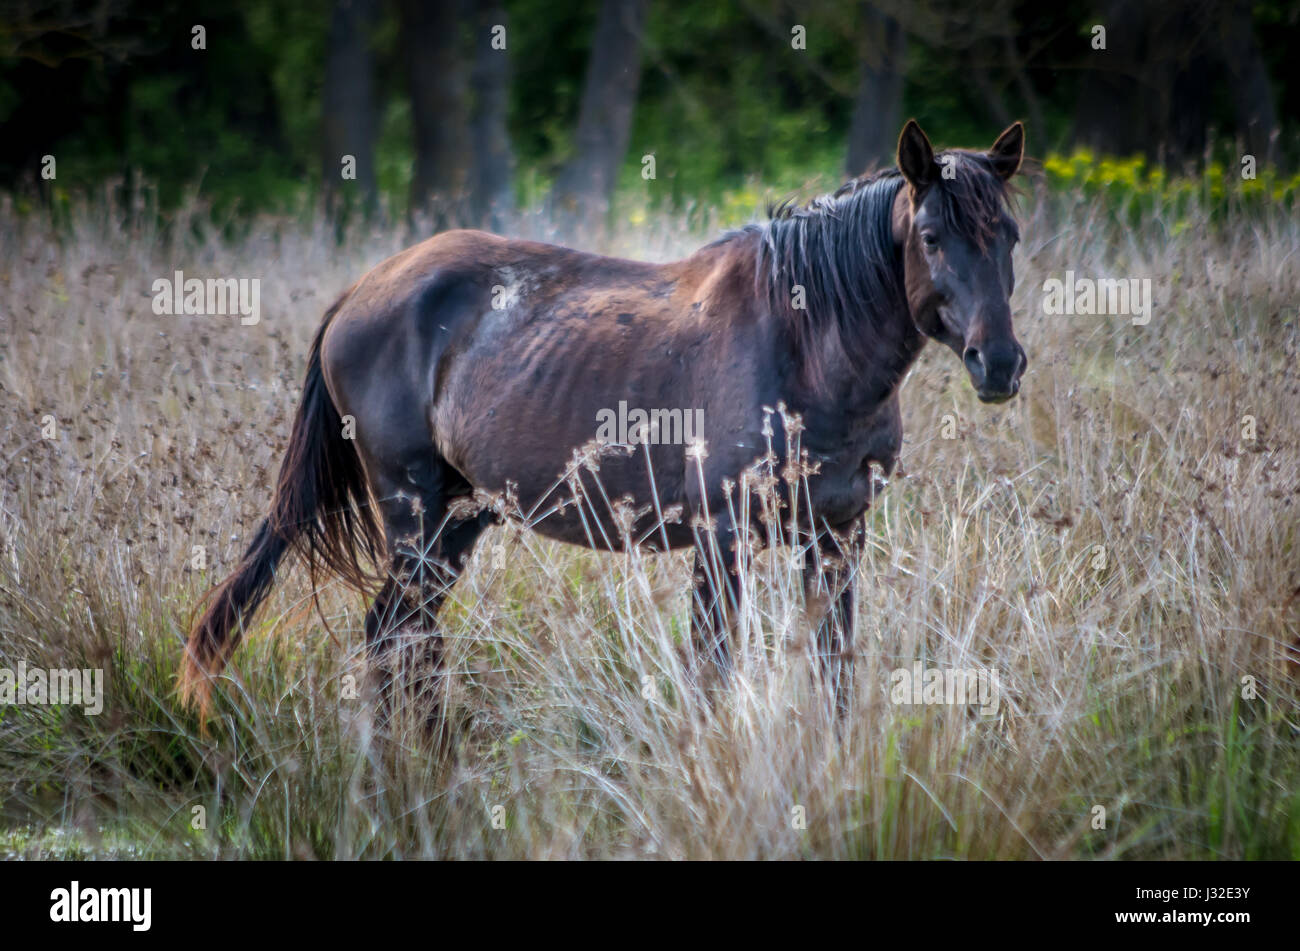 Letea forest, Tulcea county, Romania. Wild horses in Danube Delta. Natural reservation of Letea. - Stock Image